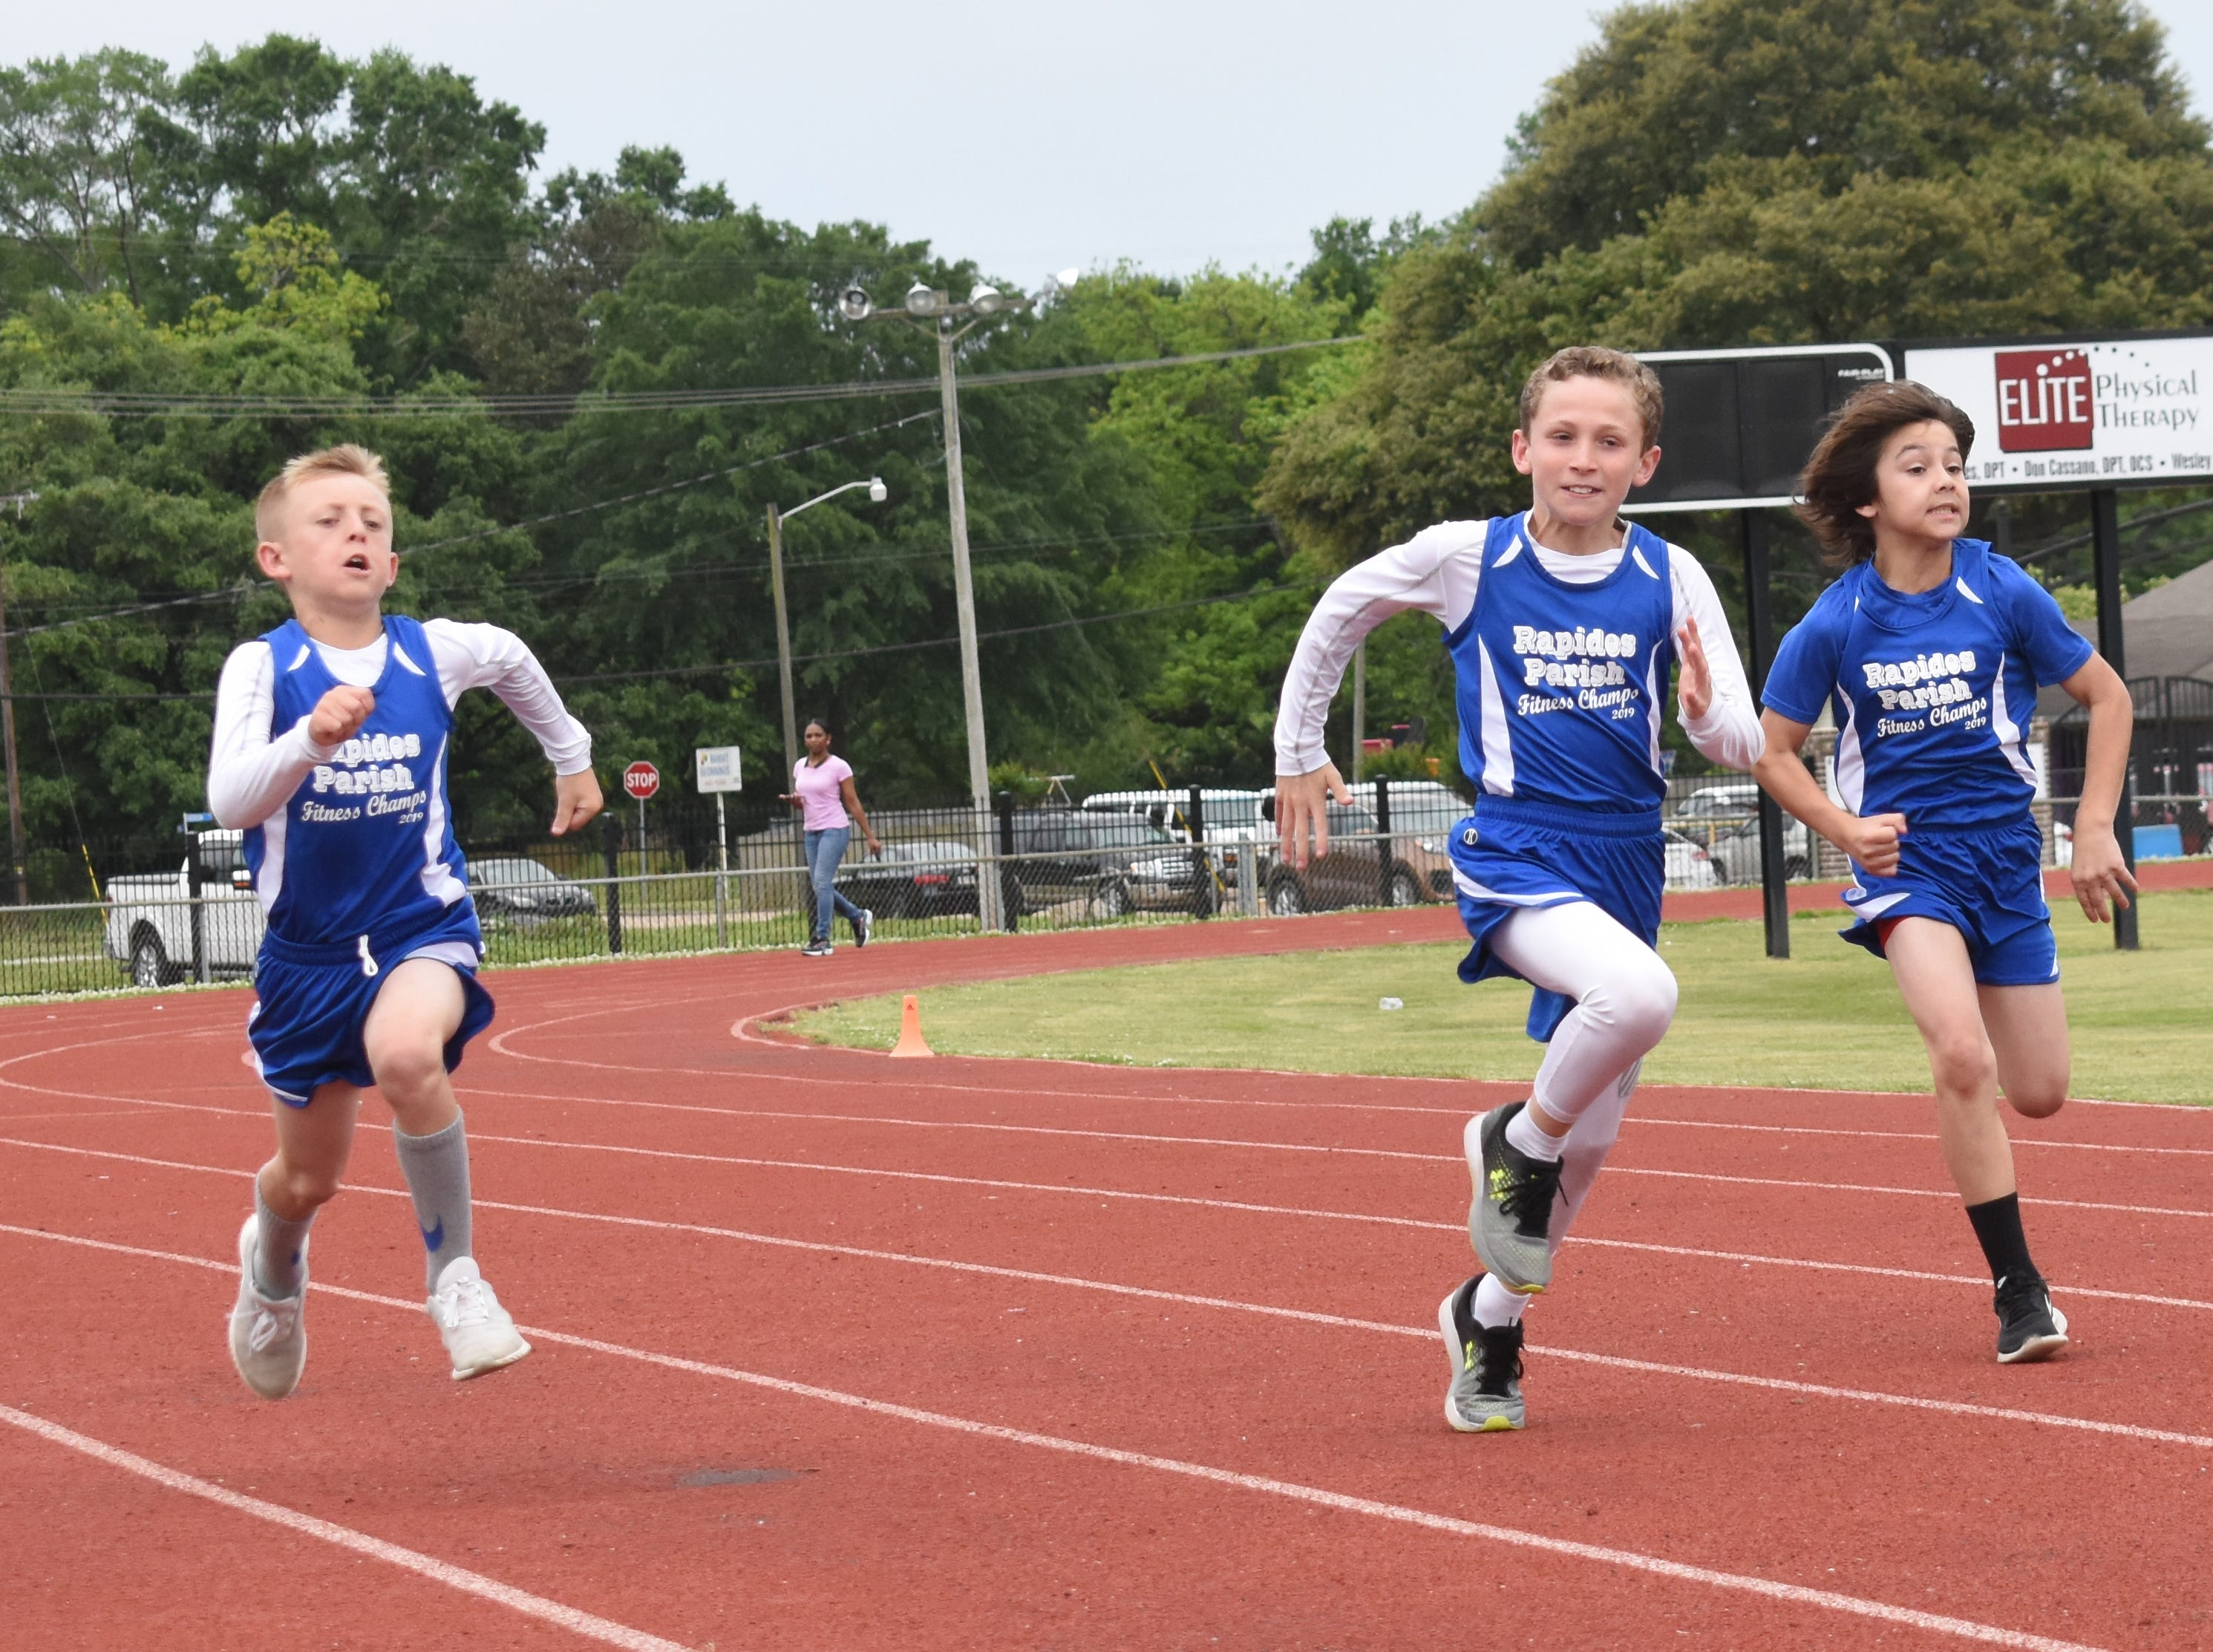 Jaxon Ross (left) and Jacob Dean, both with Nachman Elementary School, and Bryce Warthen of Hayden R. Lawrence are part of the 2019 Rapides Parish Fitness Team. All will compete in the 2019 State Championship Fitness Meet to be held Saturday, April 27, 2019 at Alexandria Senior High School. The meet is part of the Governor's Council on Fitness and Sports. Students from throughout Louisiana will compete in seven events: 50-yard dash, sit and reach, pull-ups,  shuttle run, curl-ups (sit-ups), standing long jump, and the 600-yard run. For the past three years, the Rapides Parish Fitness Team has placed first at the meet. Dean was the highest scoring boy last year and won the title of 2018 Mr. Fitness for the State of Louisiana. The meet will be from 10 a.m. to 2 p.m.